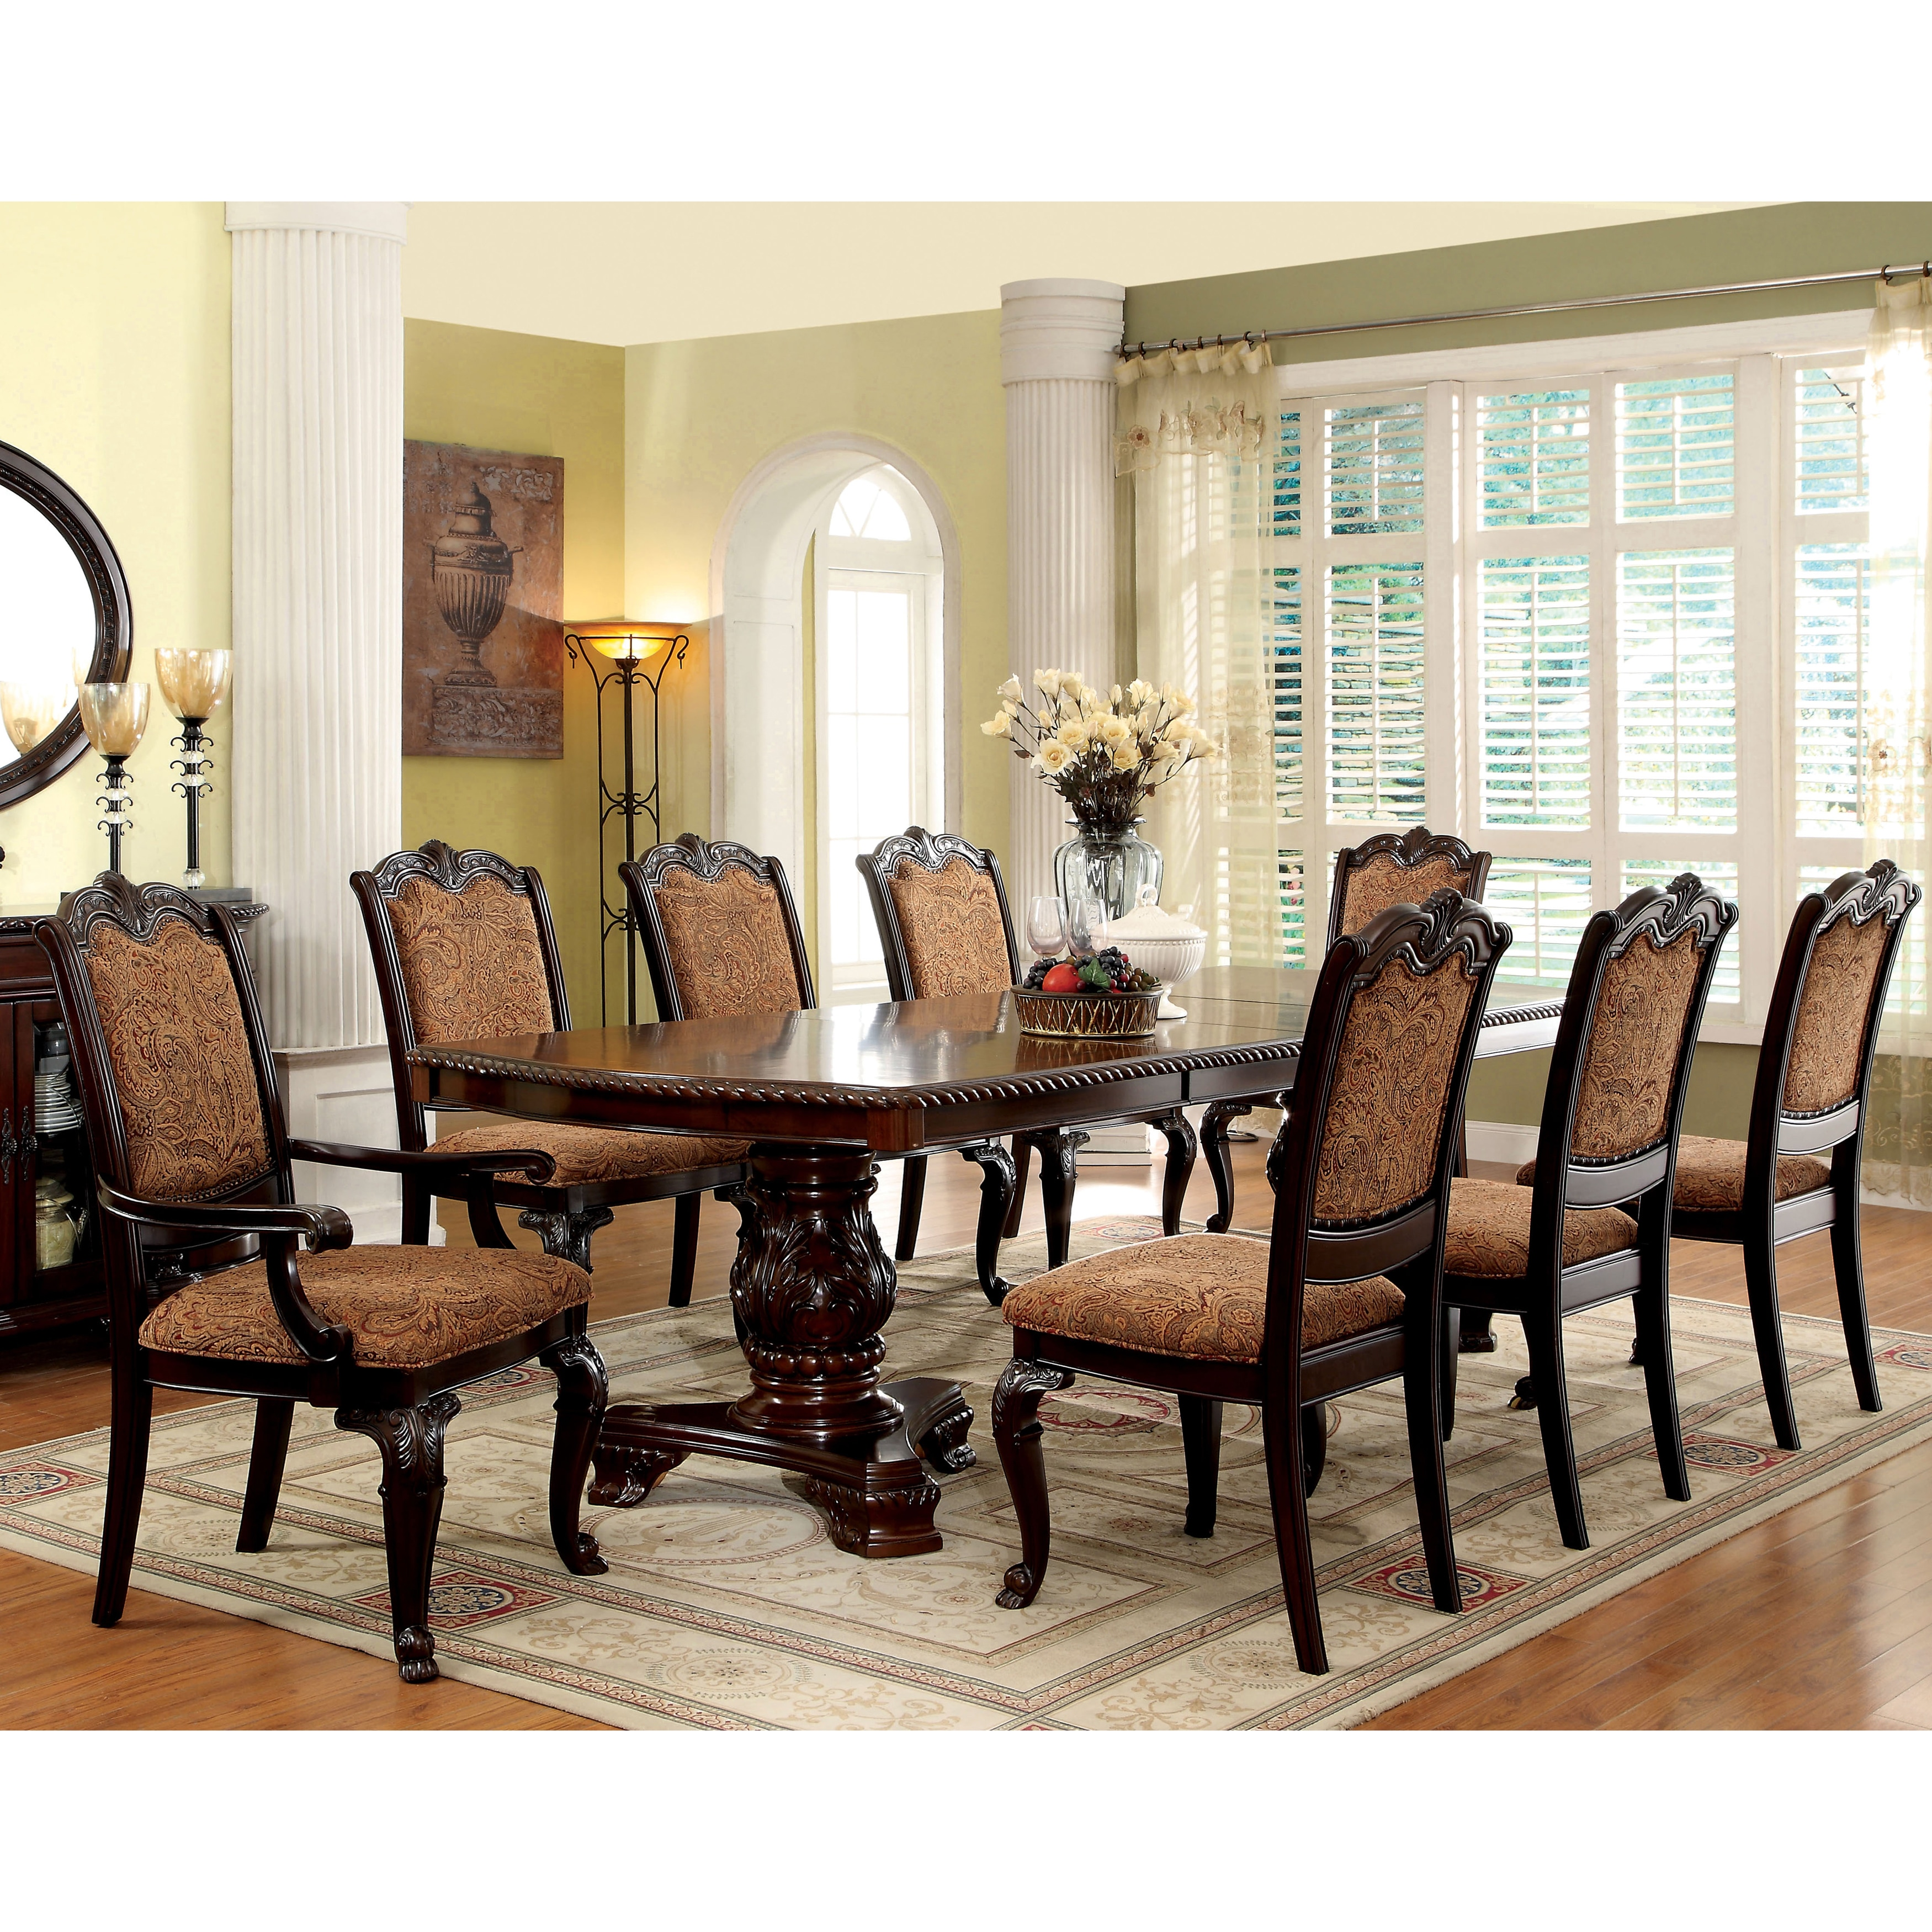 Shop Furniture Of America Oskarre Formal Fabric Arm Chairs (Set Of 2)    Free Shipping Today   Overstock.com   9828284